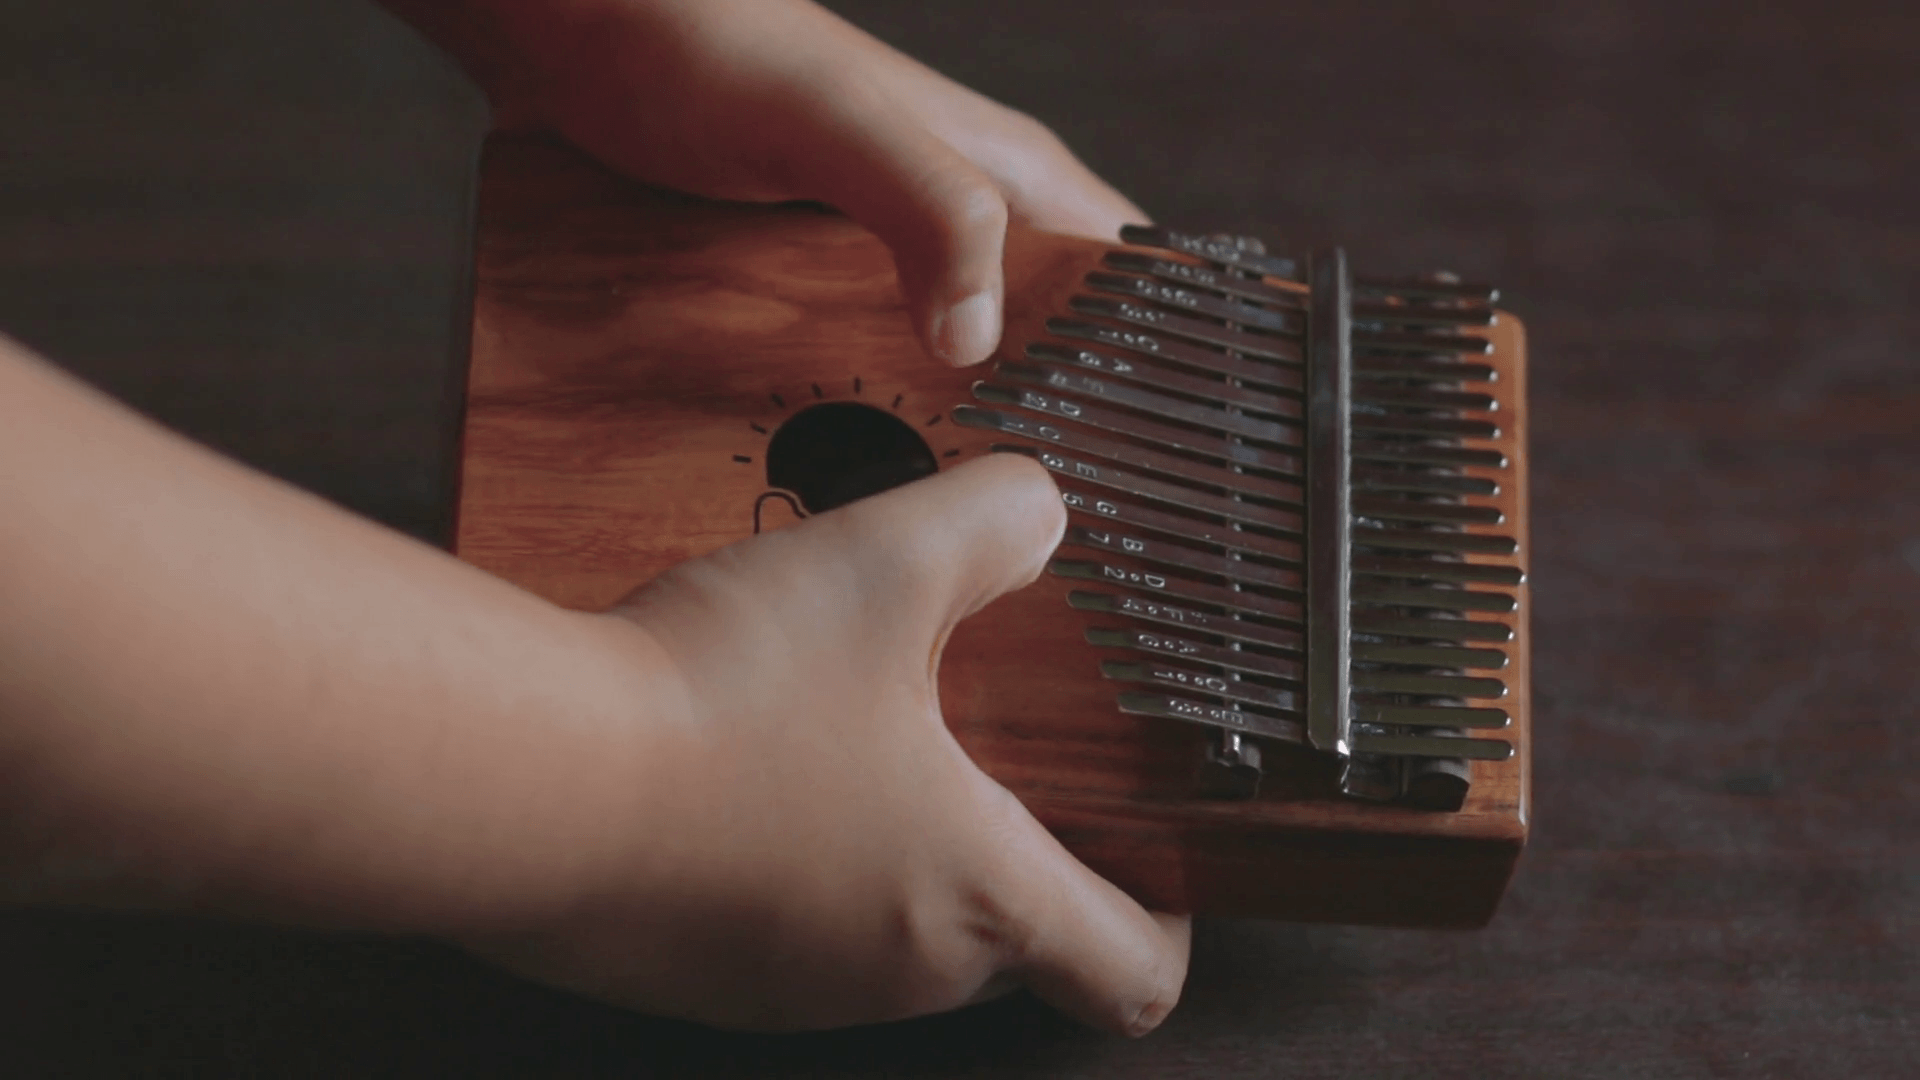 Playing chords on Kalimba. It is an African musical instrument